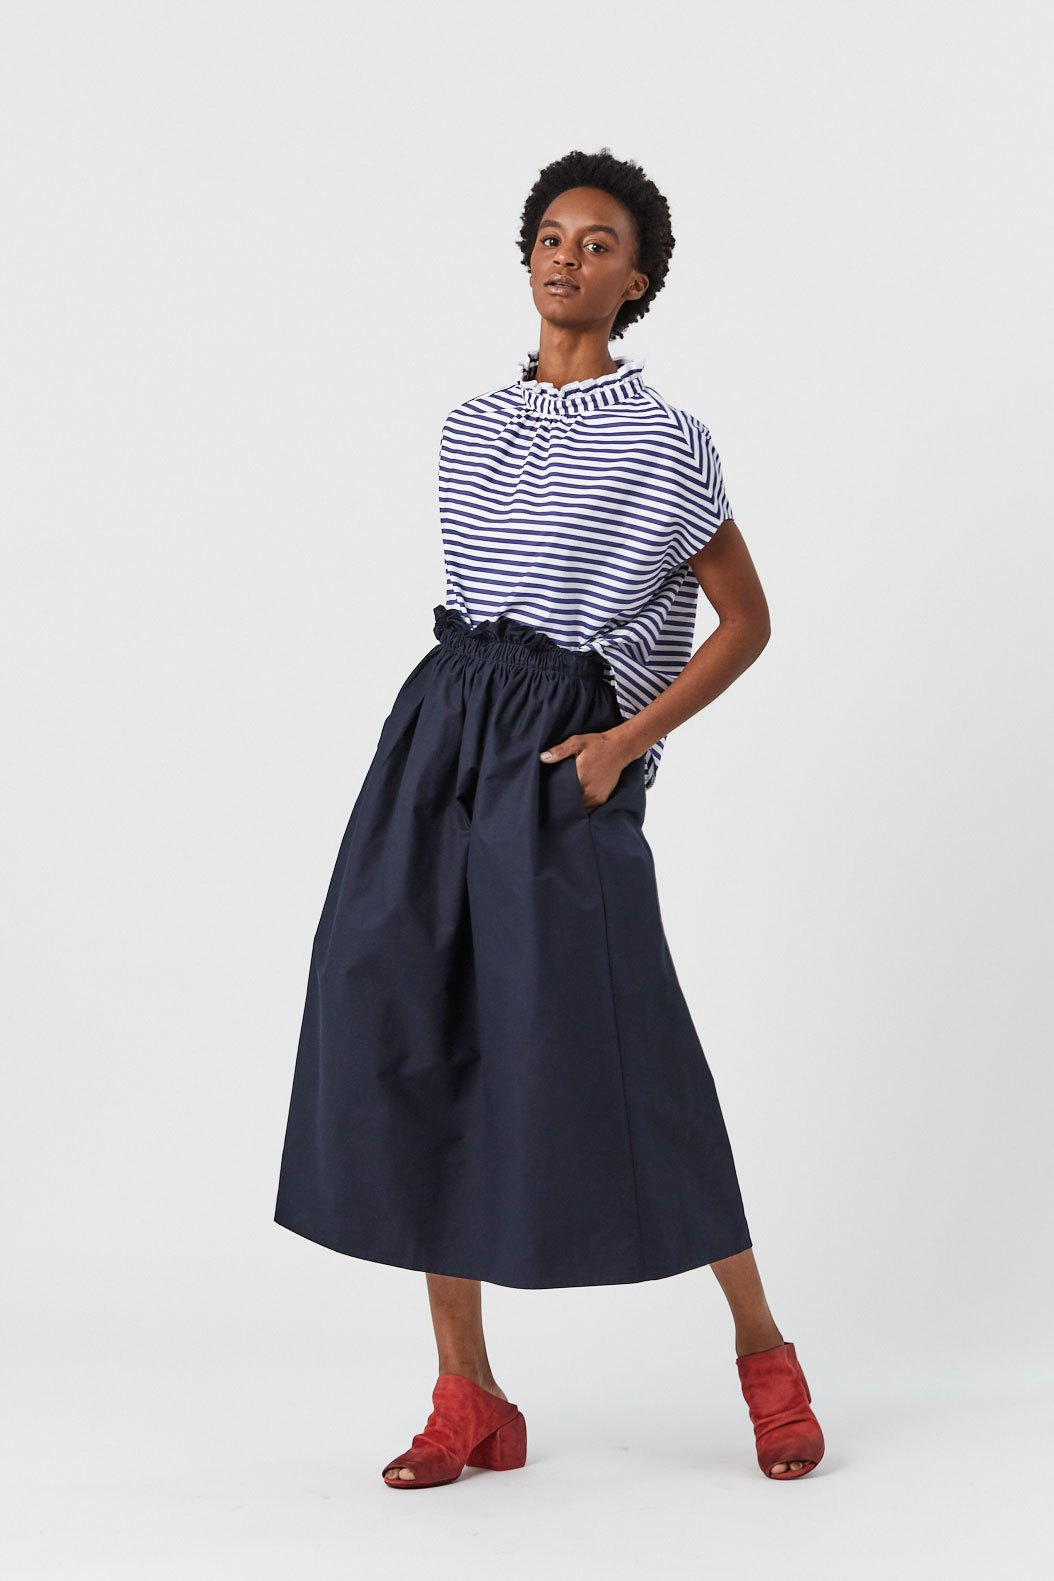 Atlantique Ascoli - Long Petite Jupe Grand Skirt, Navy